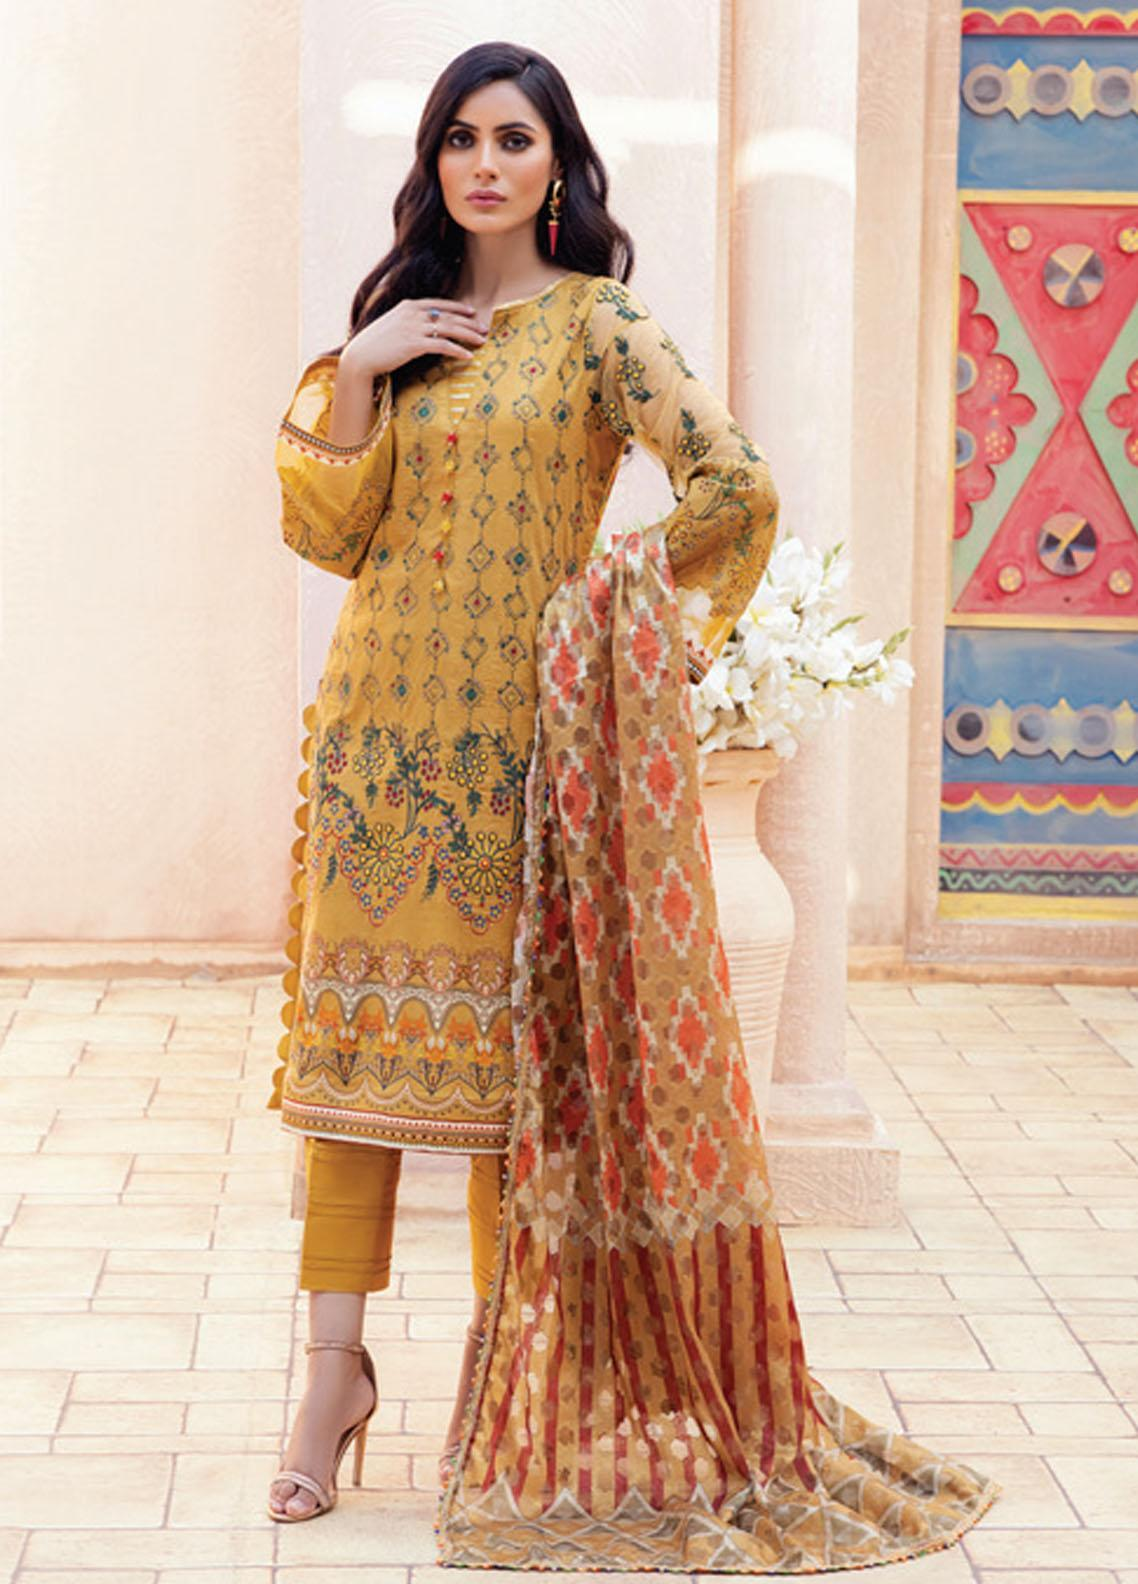 Festive Hues By Al Zohaib Embroidered Lawn Suits Unstitched 3 Piece AZ21-FH2 05 - Summer Collection